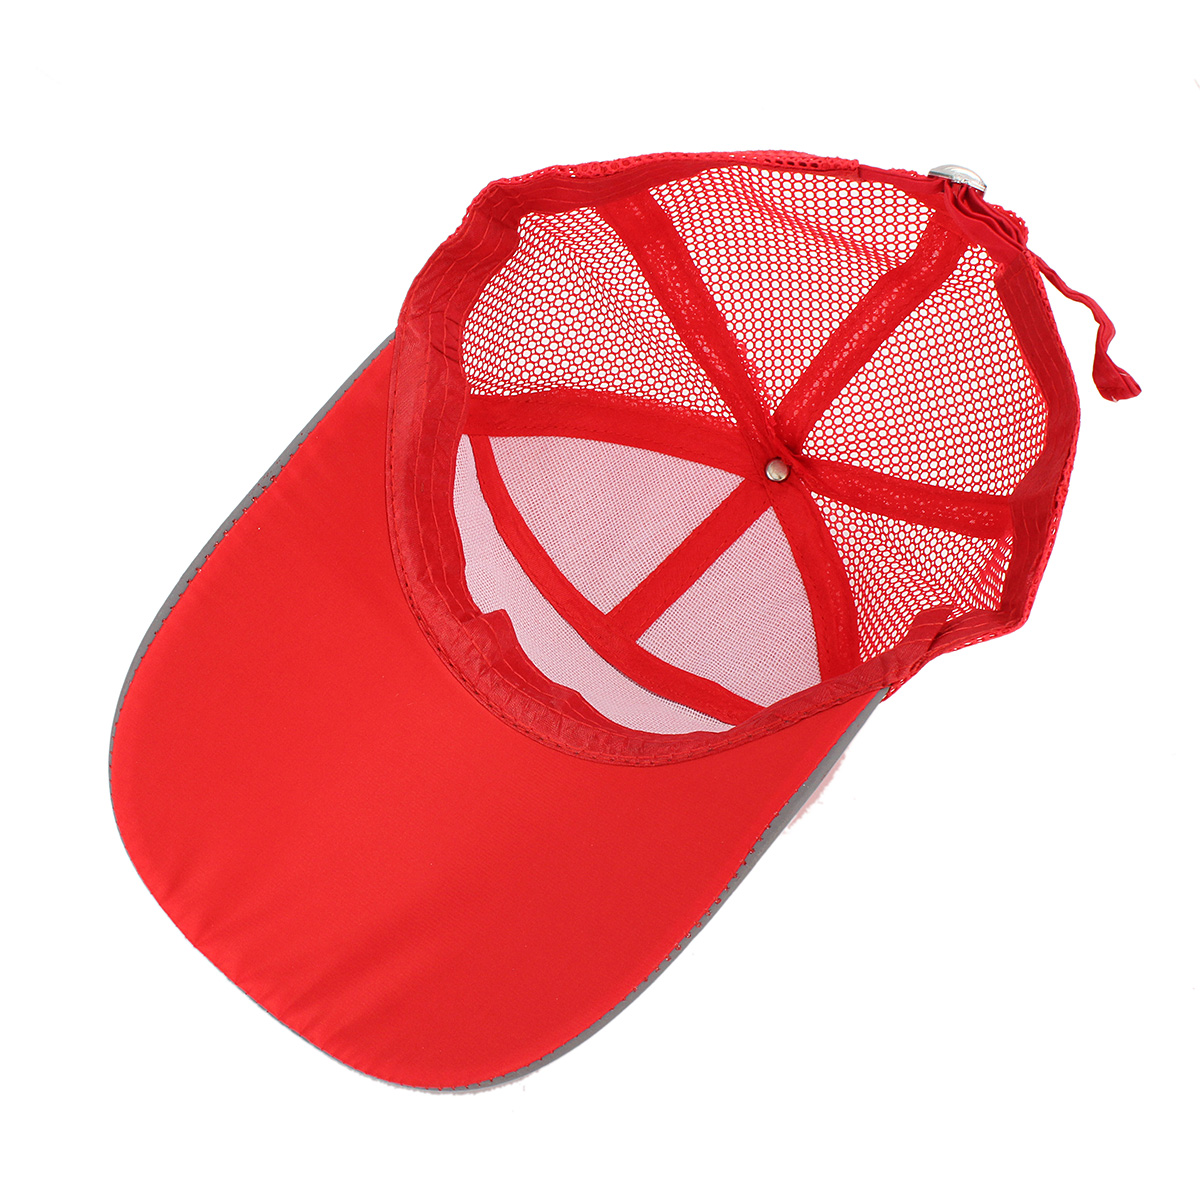 Mens Women Quick-dry Breathable Mesh Baseball Cap Sun Visor Hats Outdoor Sunshade Caps